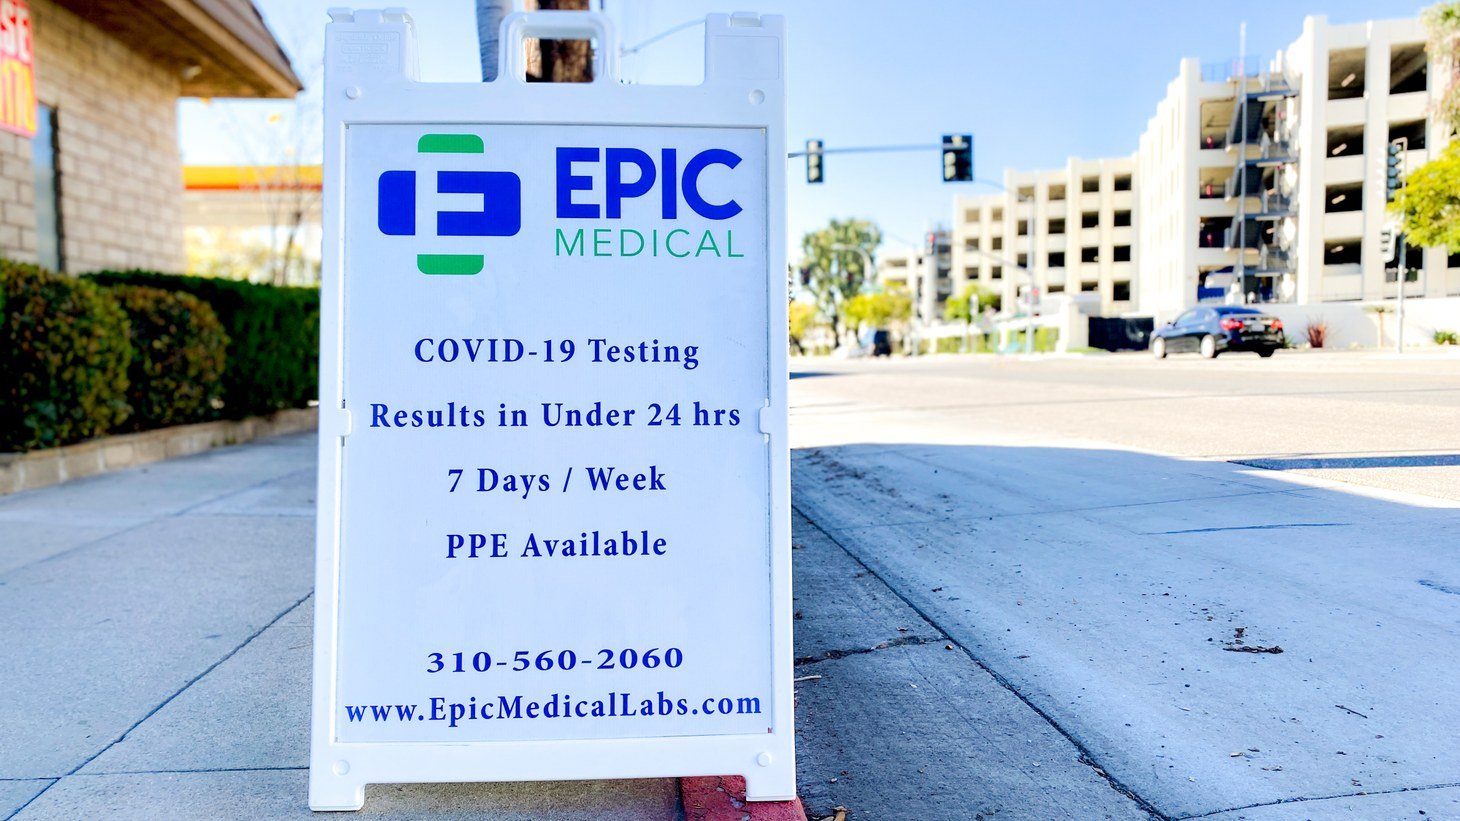 A medical center offers COVID-19 testing with results in less than 24 hours, Culver City, Los Angeles, California. December 7, 2020.